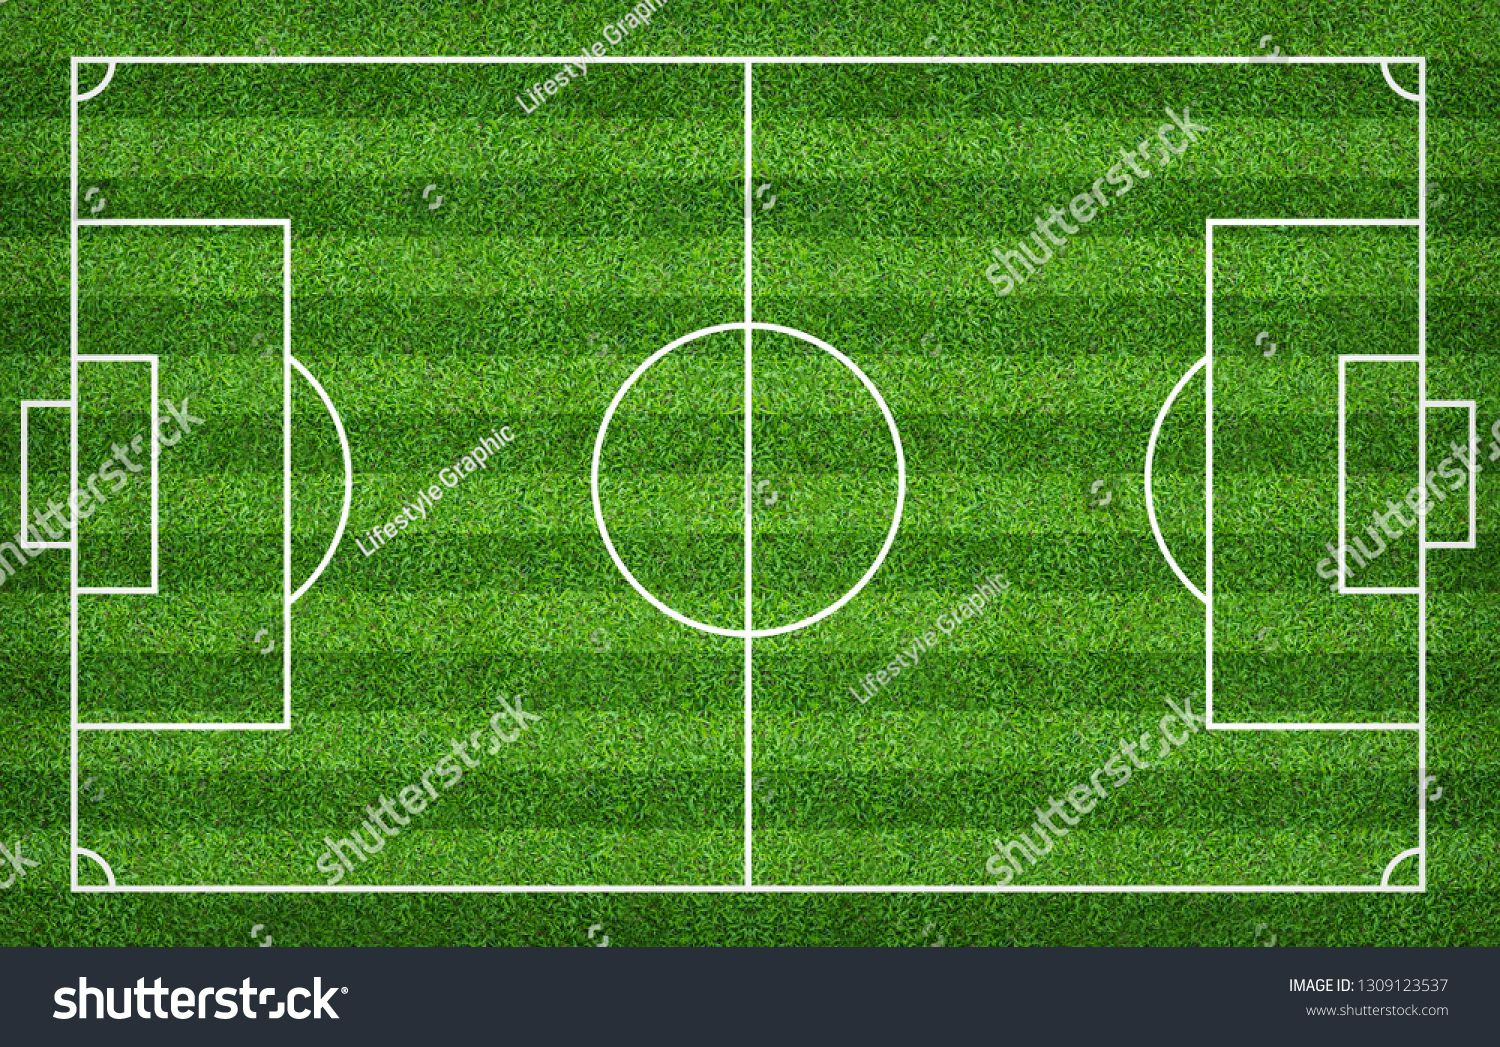 Football Field Or Soccer Field For Background Green Lawn Court For Create Sport Game Ad Affiliate Background Green So Football Field Green Lawn Soccer